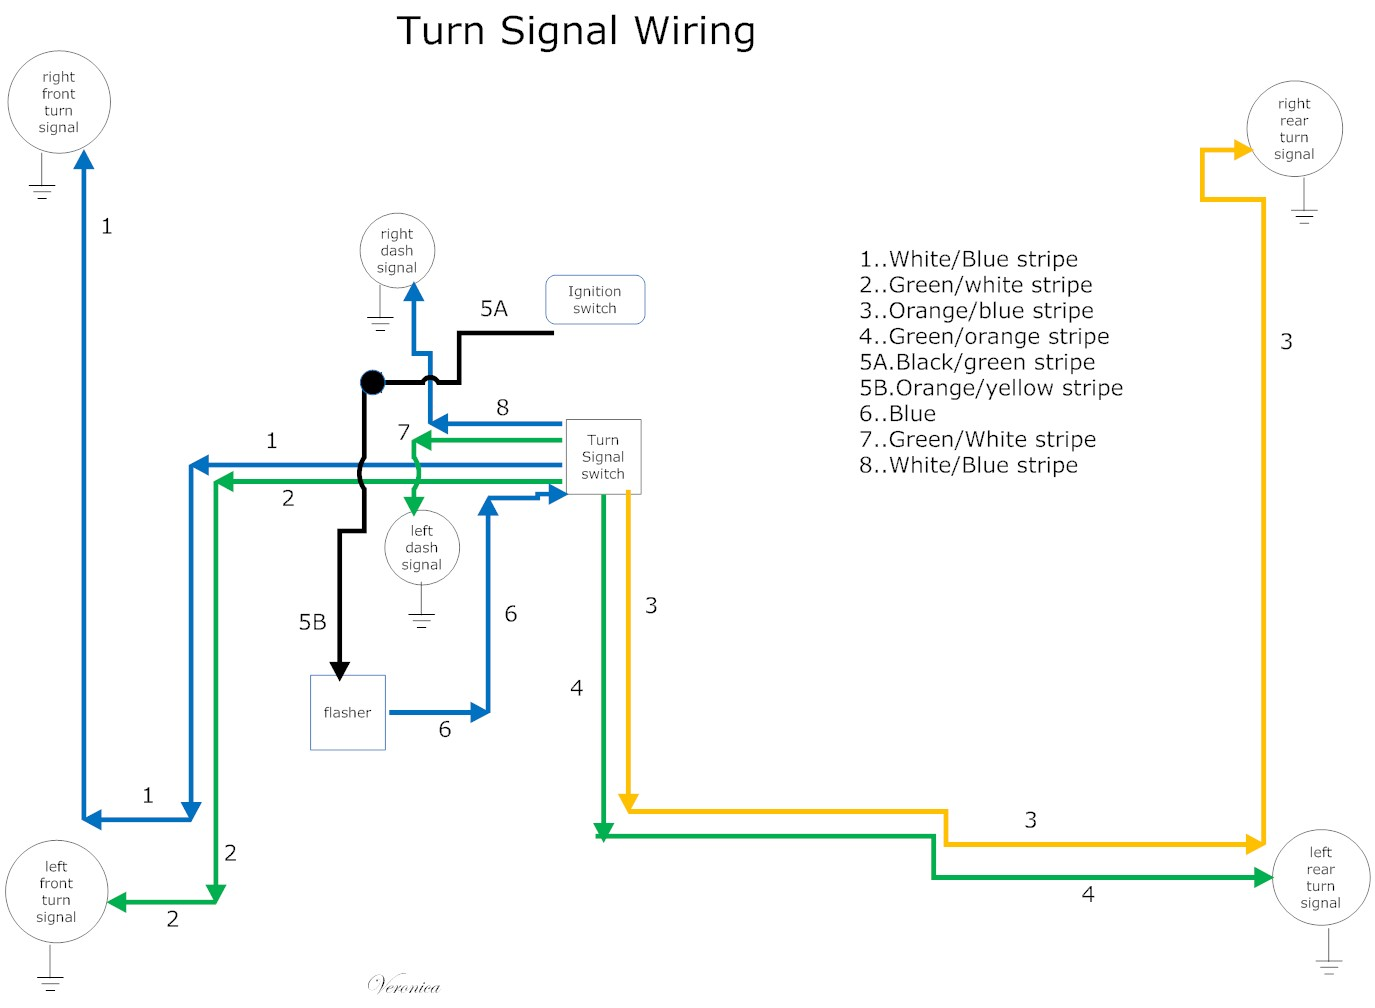 Turn+signal+Wiring wiring diagram 1966 mustang safety switch the wiring diagram 2005 mustang turn signal wiring diagram at mifinder.co